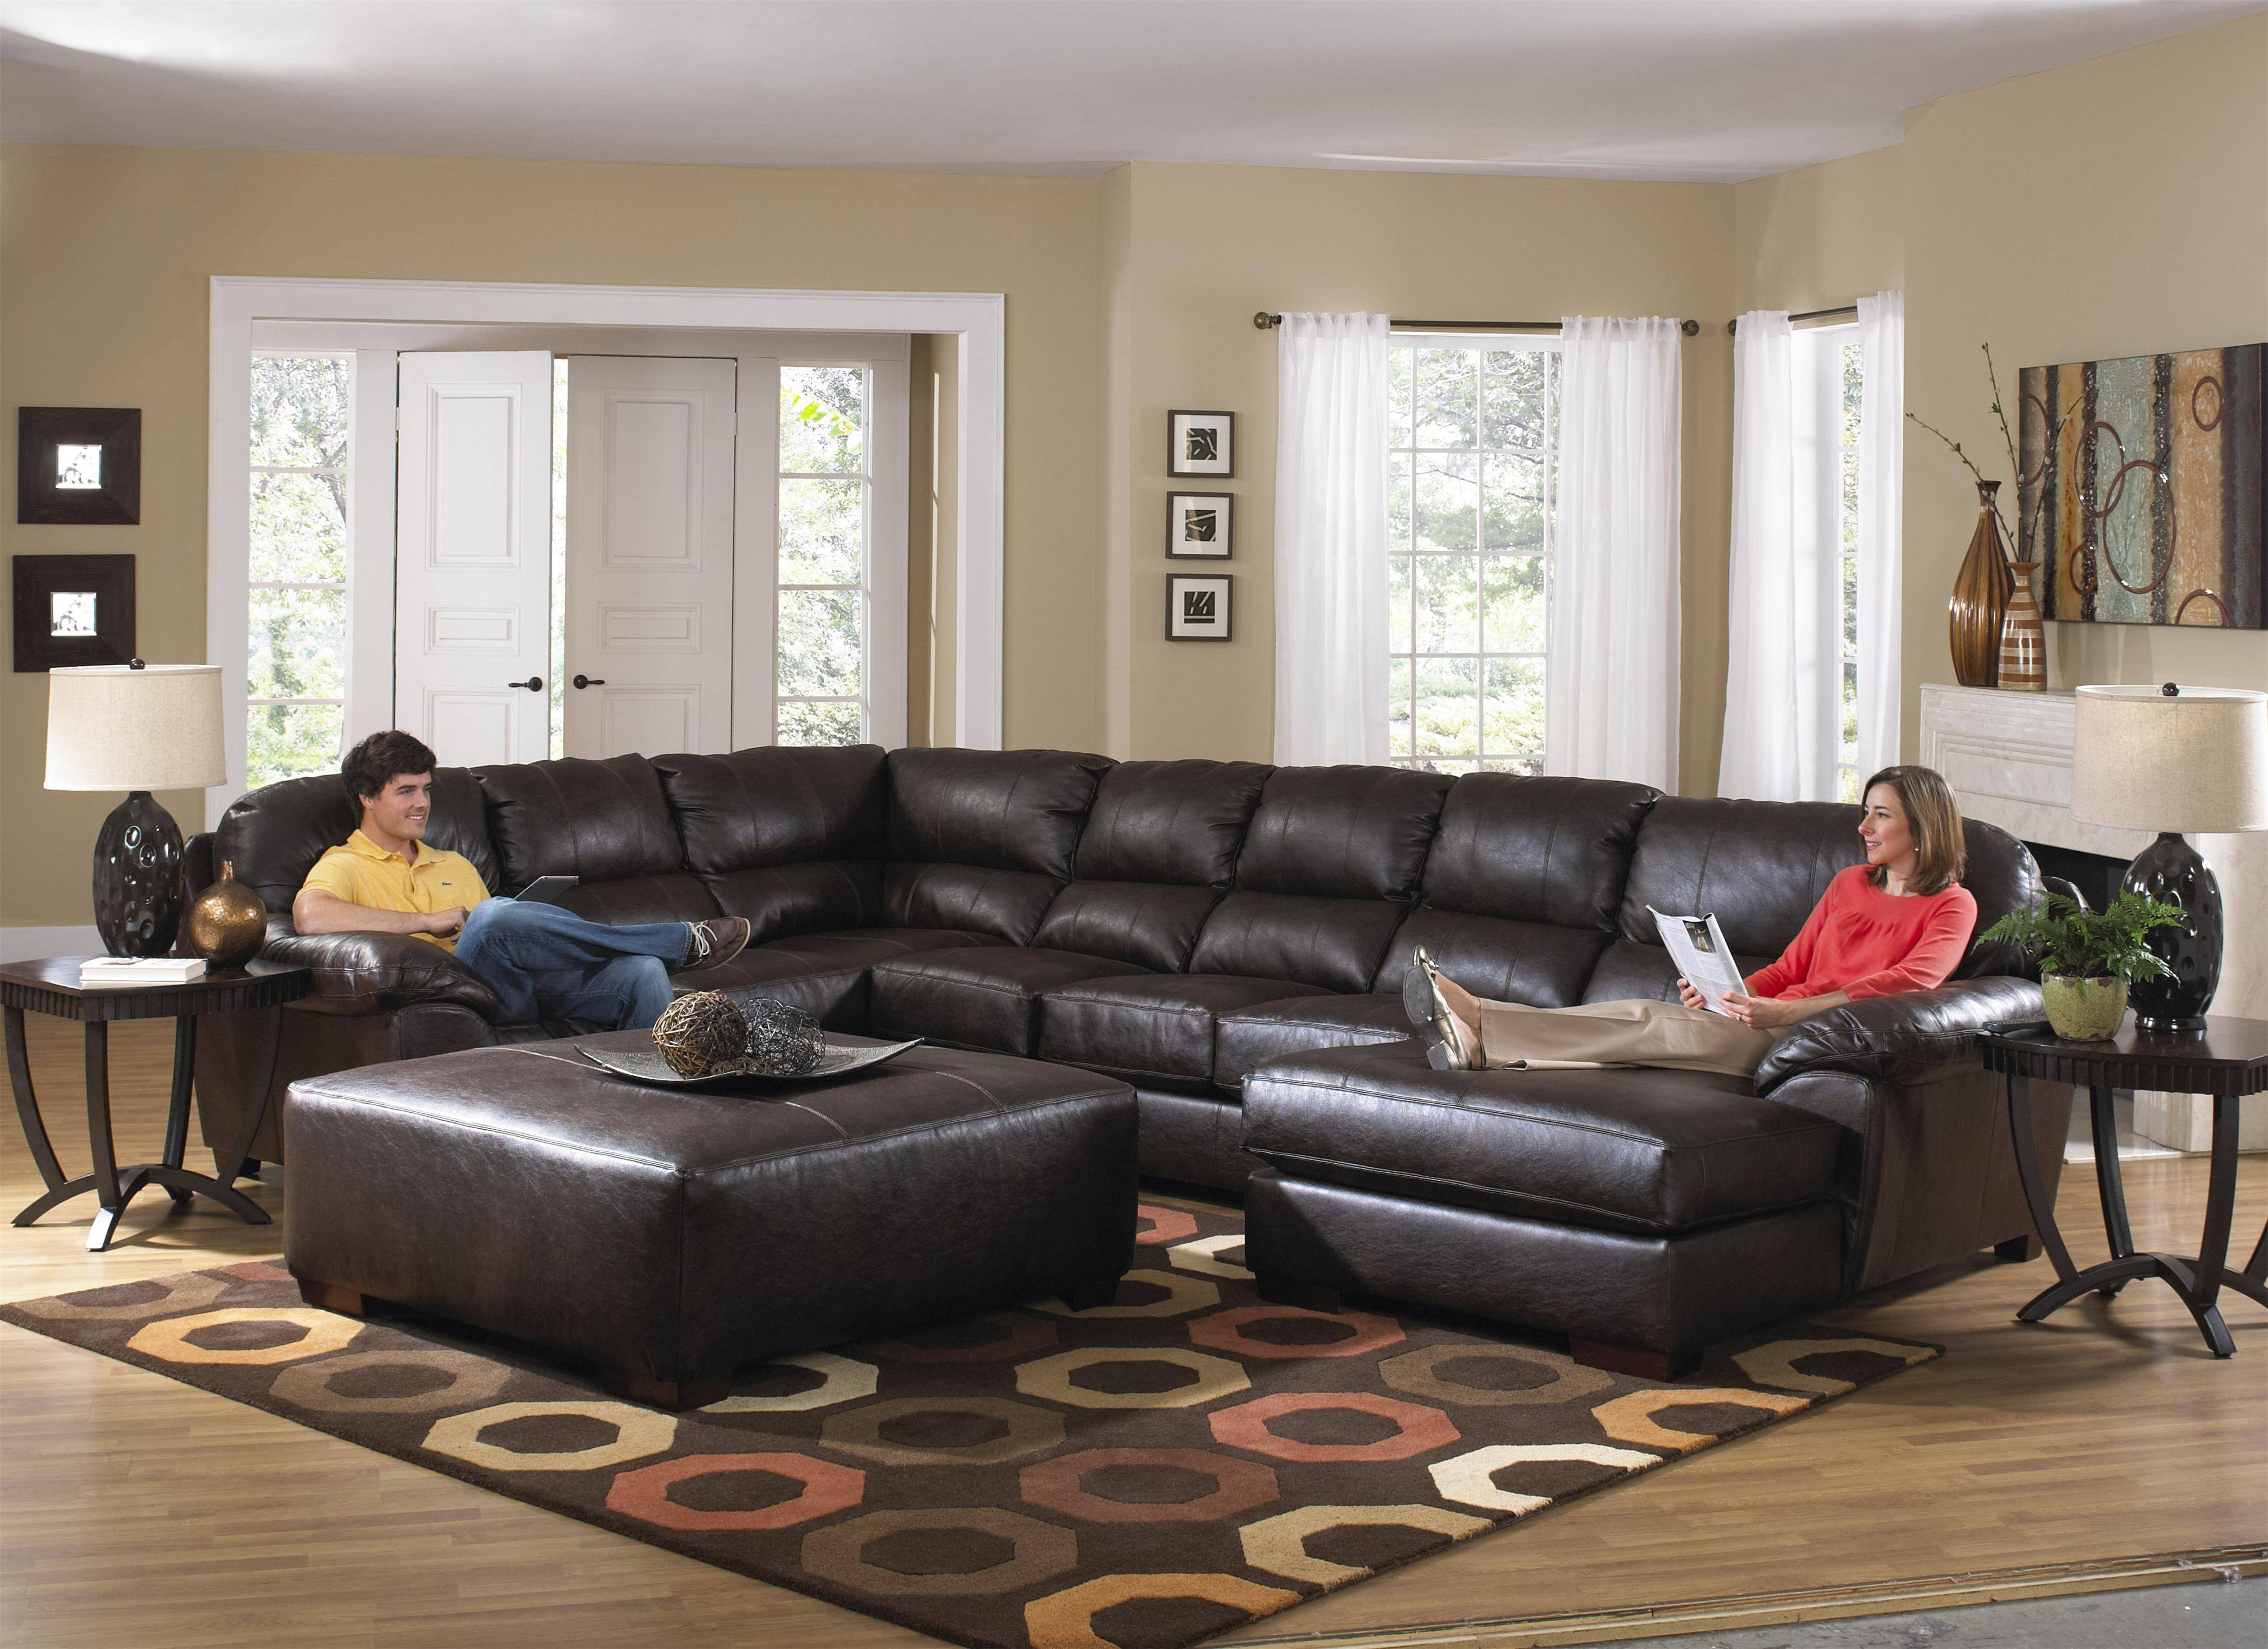 Furniture: Oversized Sectional Oversized Sofas Large Sectional Sofas within Huge Sofas (Image 8 of 30)